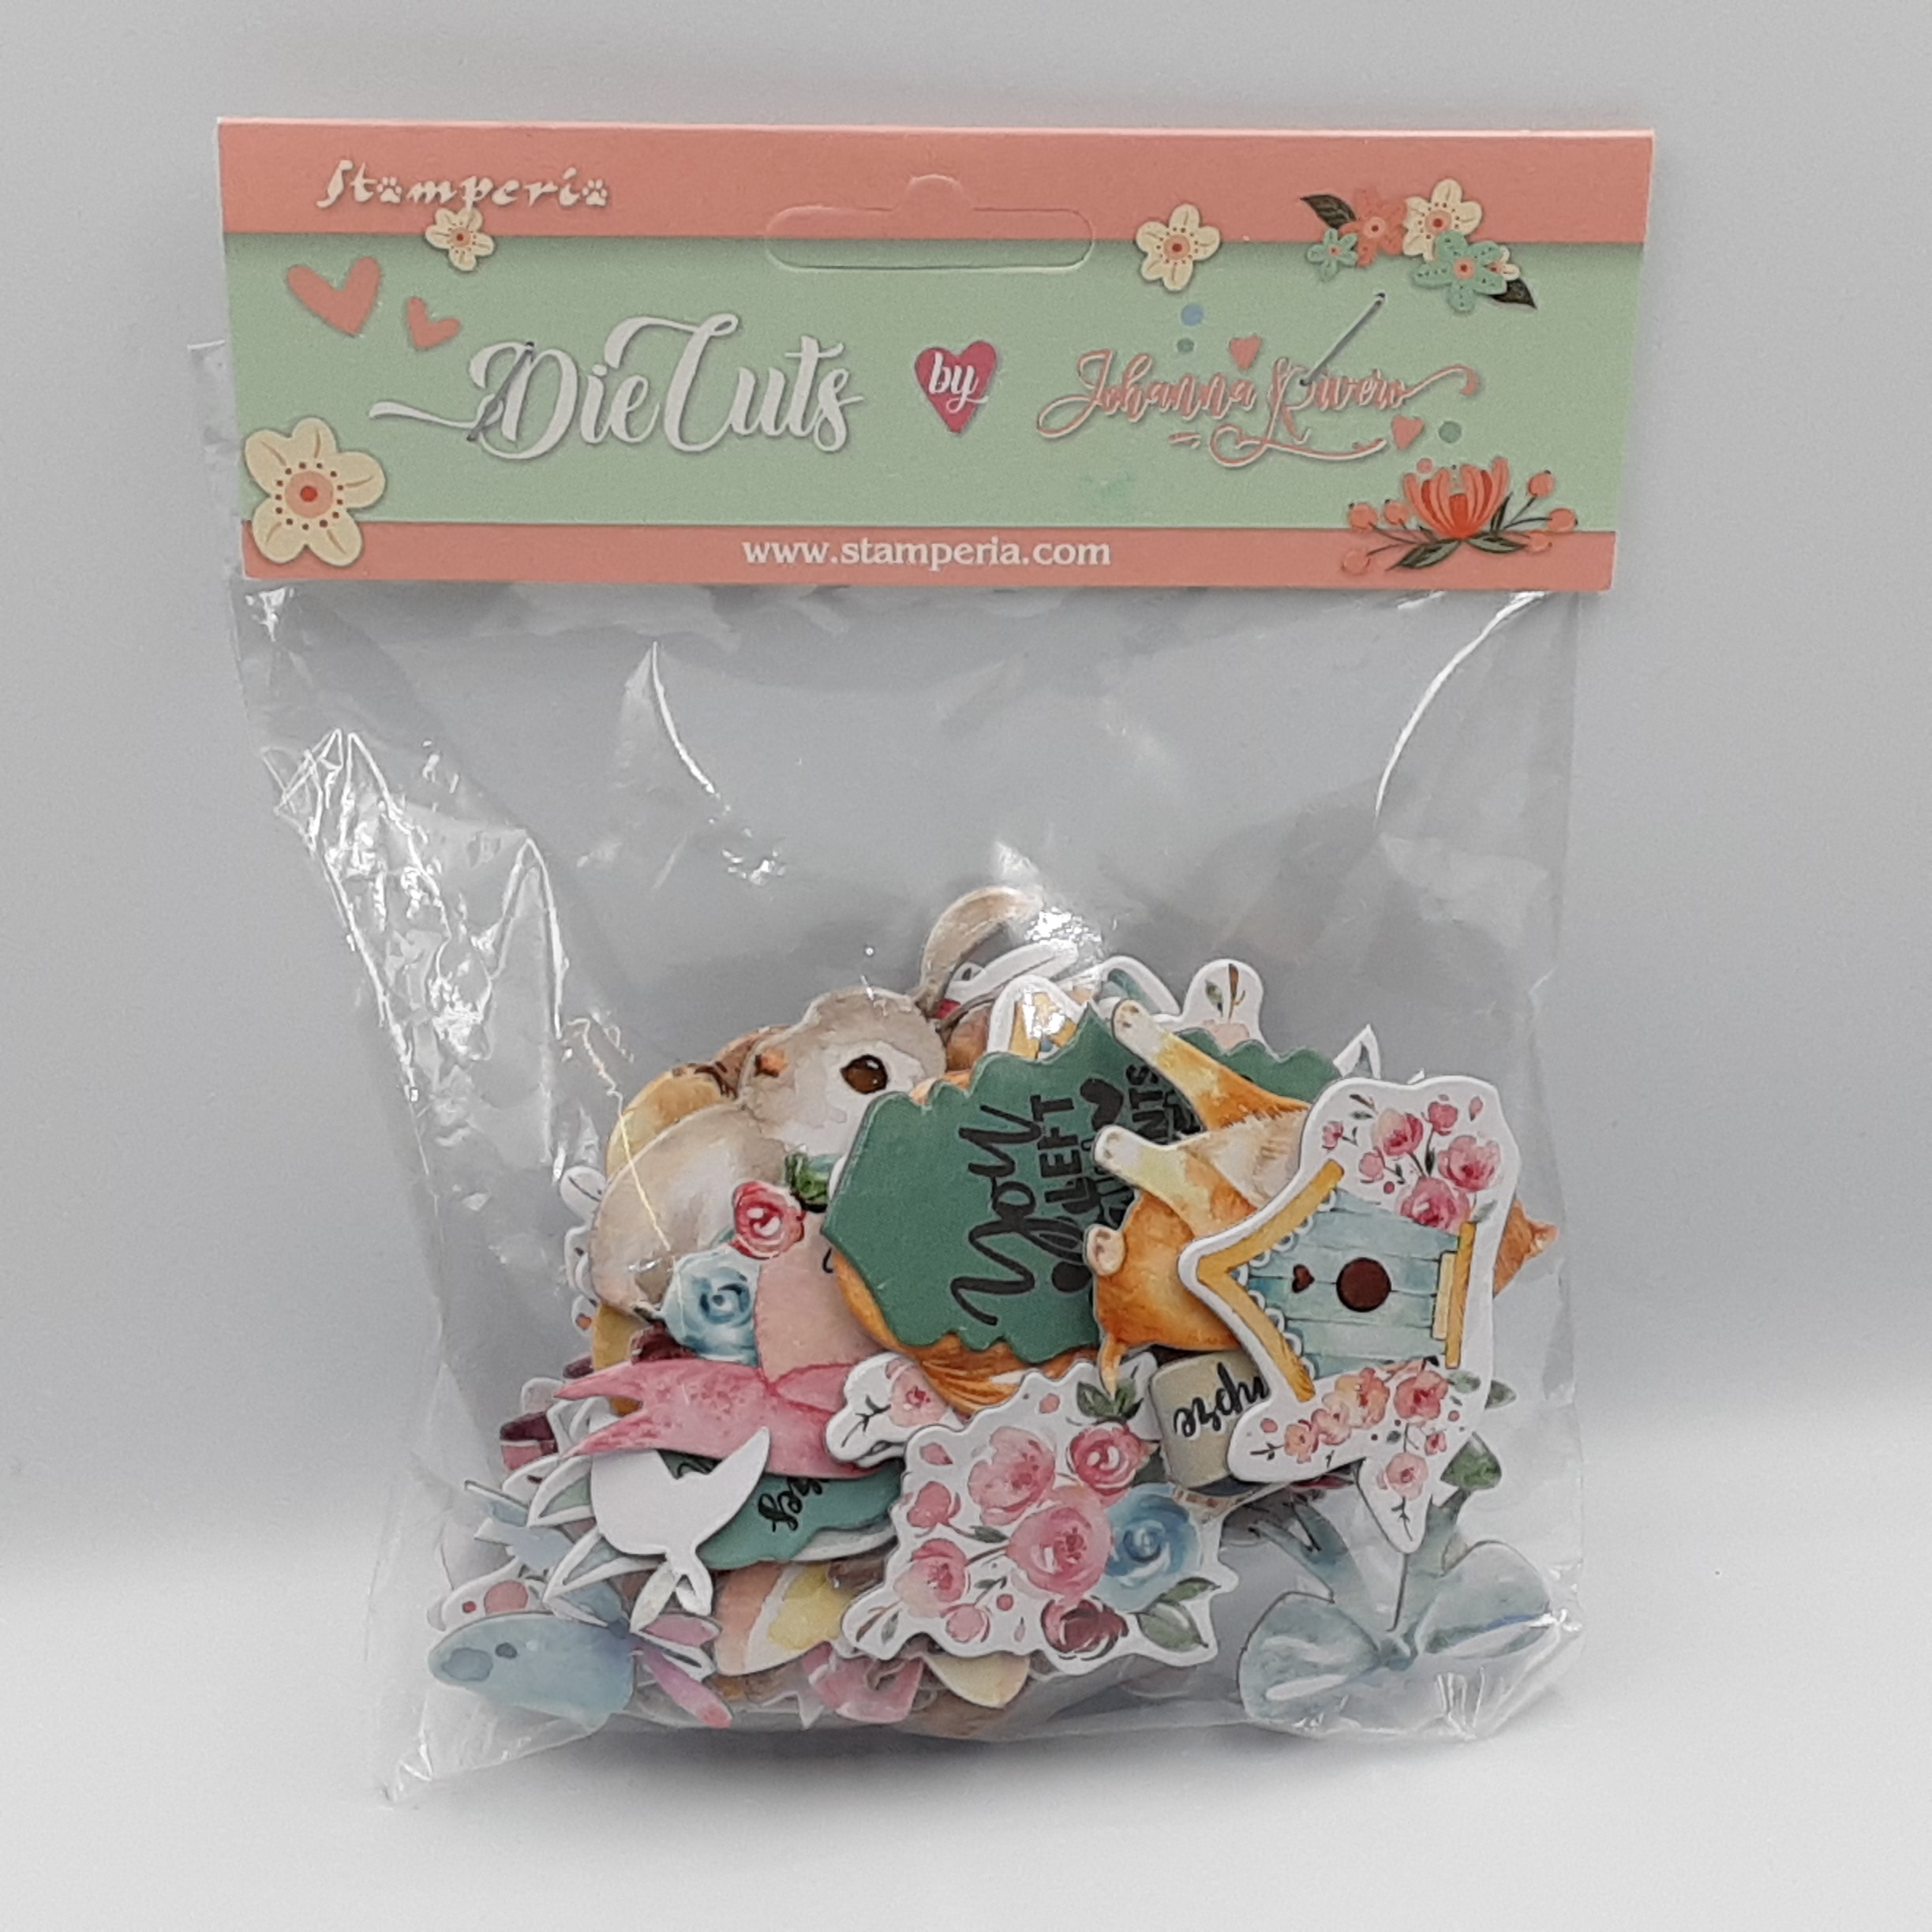 Circle of love cat's dogs and embellishments die cuts